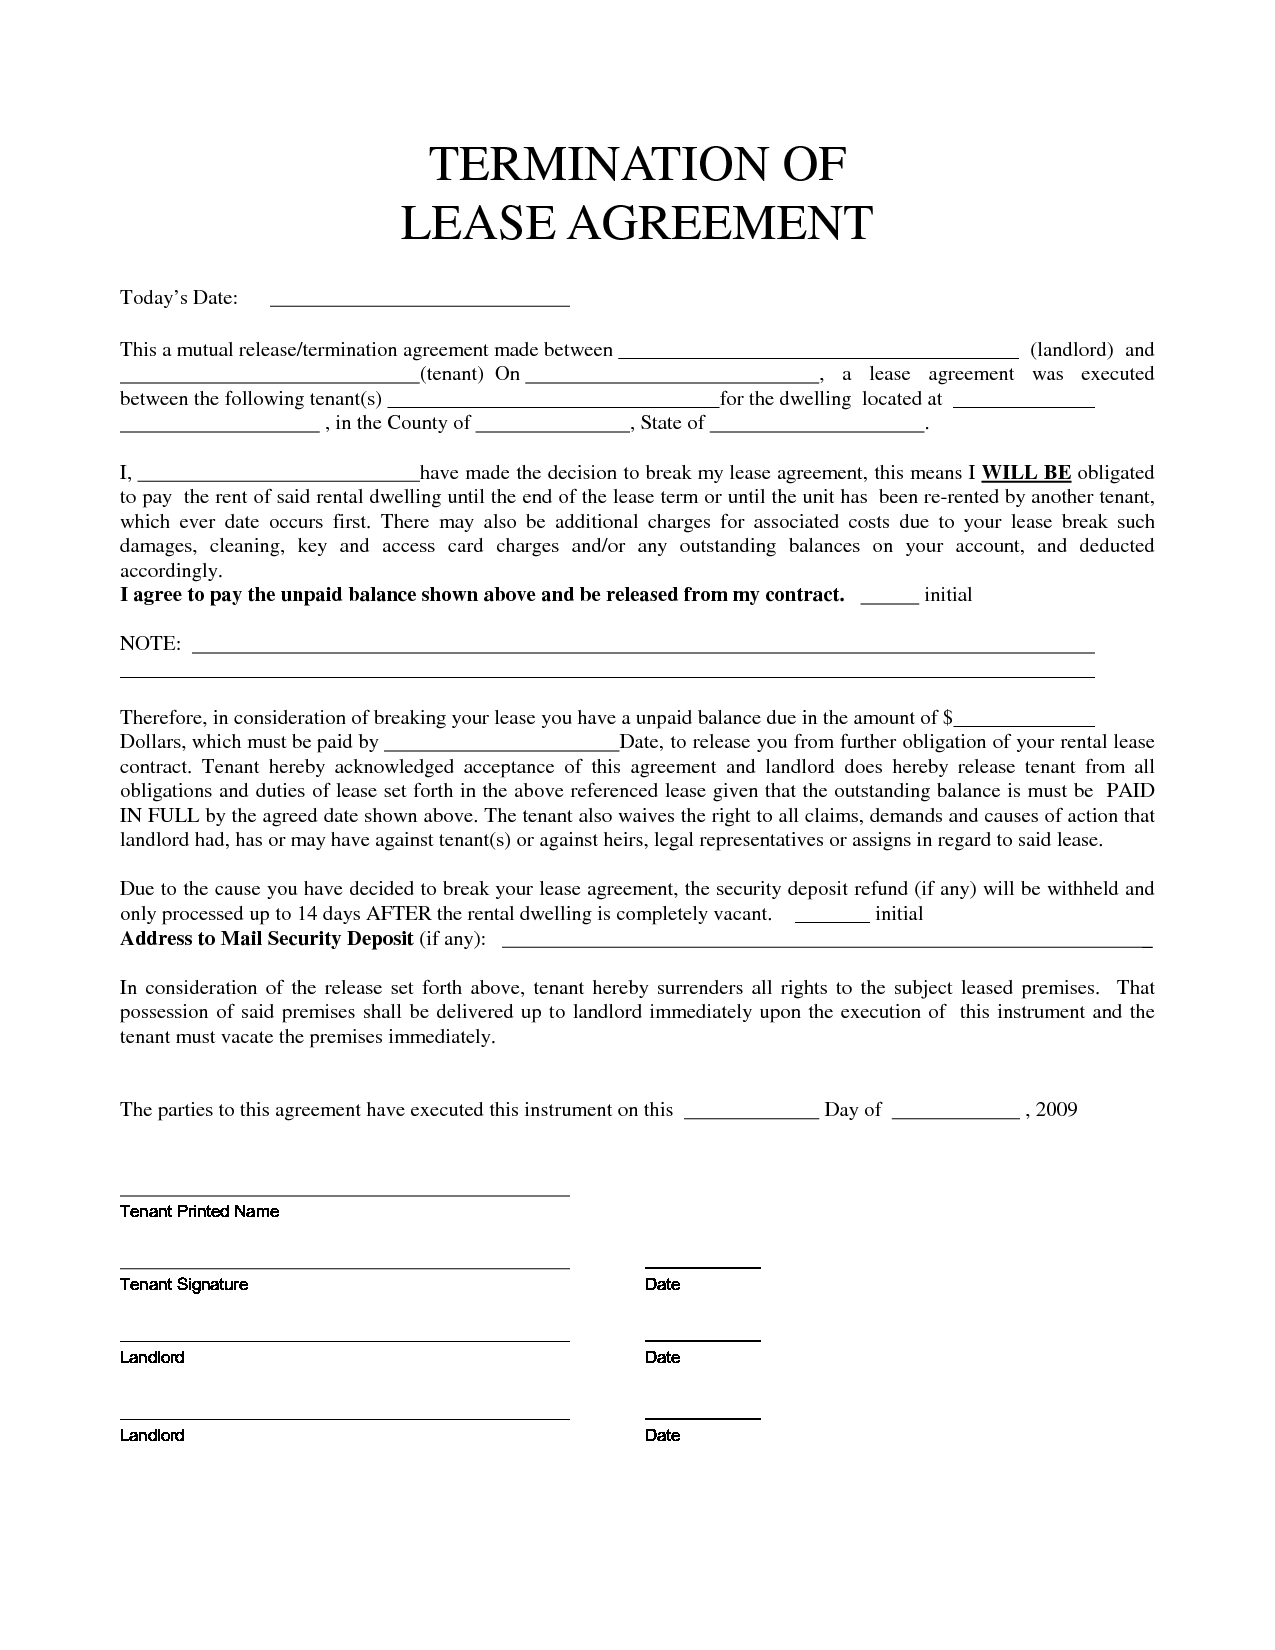 Awesome Termination Of Lease Letter Your template collection